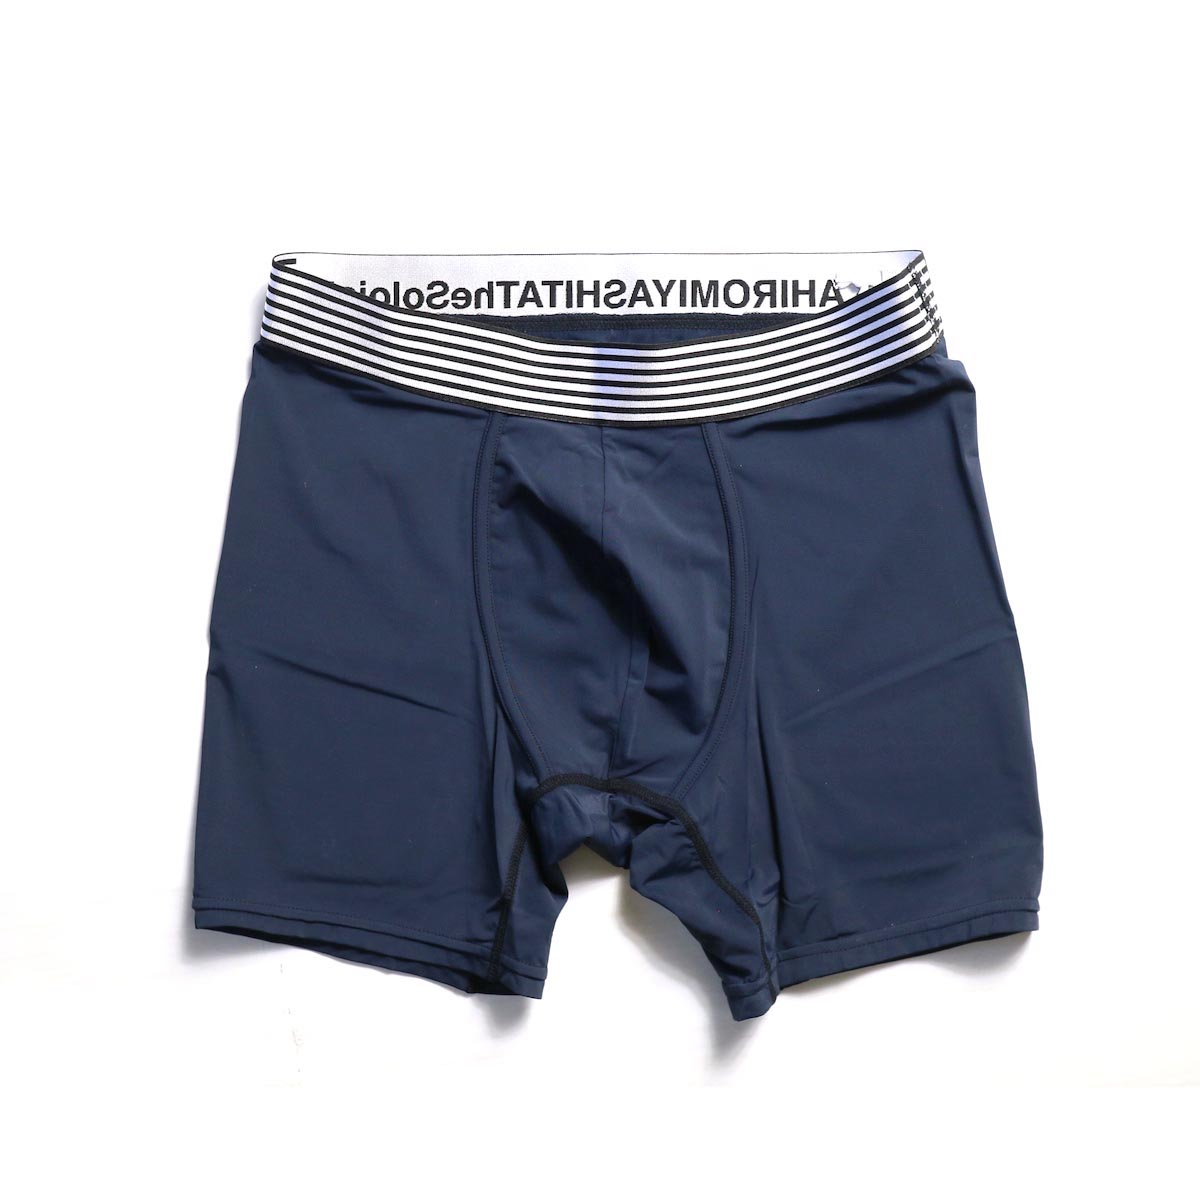 TheSoloist. / swc.0019AW18 boxer brief. (Navy)